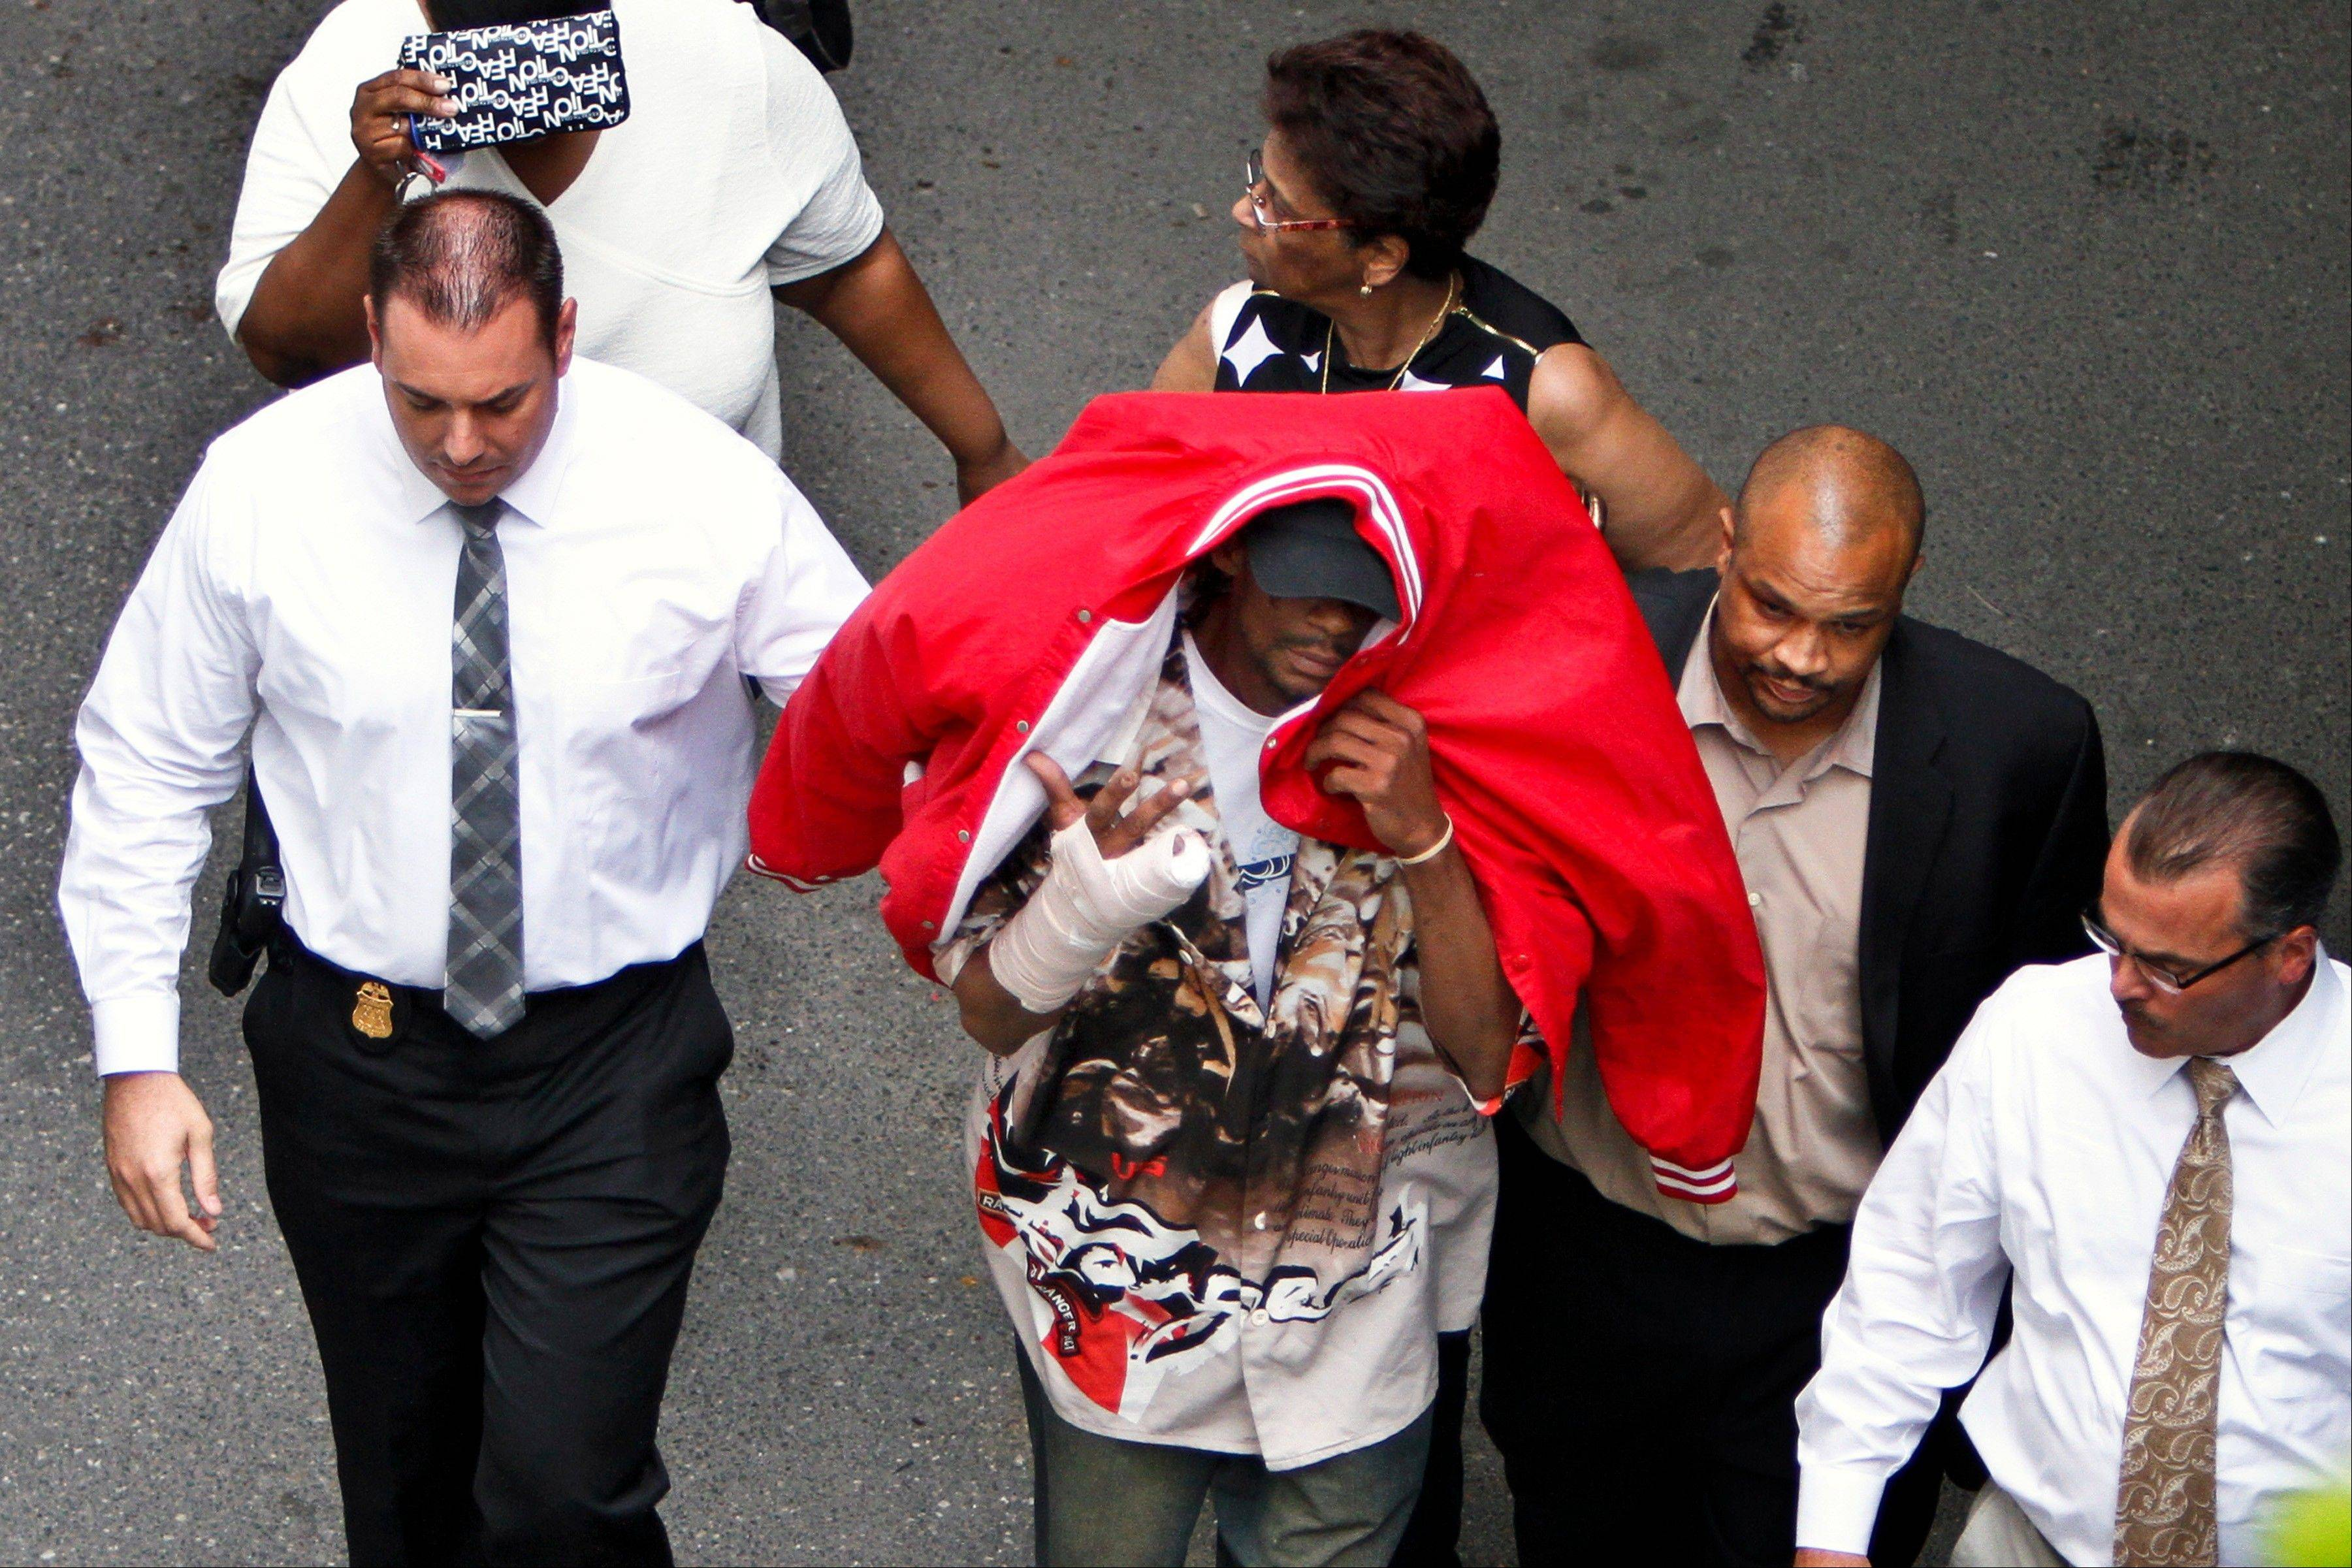 Sean Benschop, center, with red jacket over his head, walks Saturday with investigators as he arrives at the Philadelphia Police Department's Central Detectives Division in Center City Philadelphia.